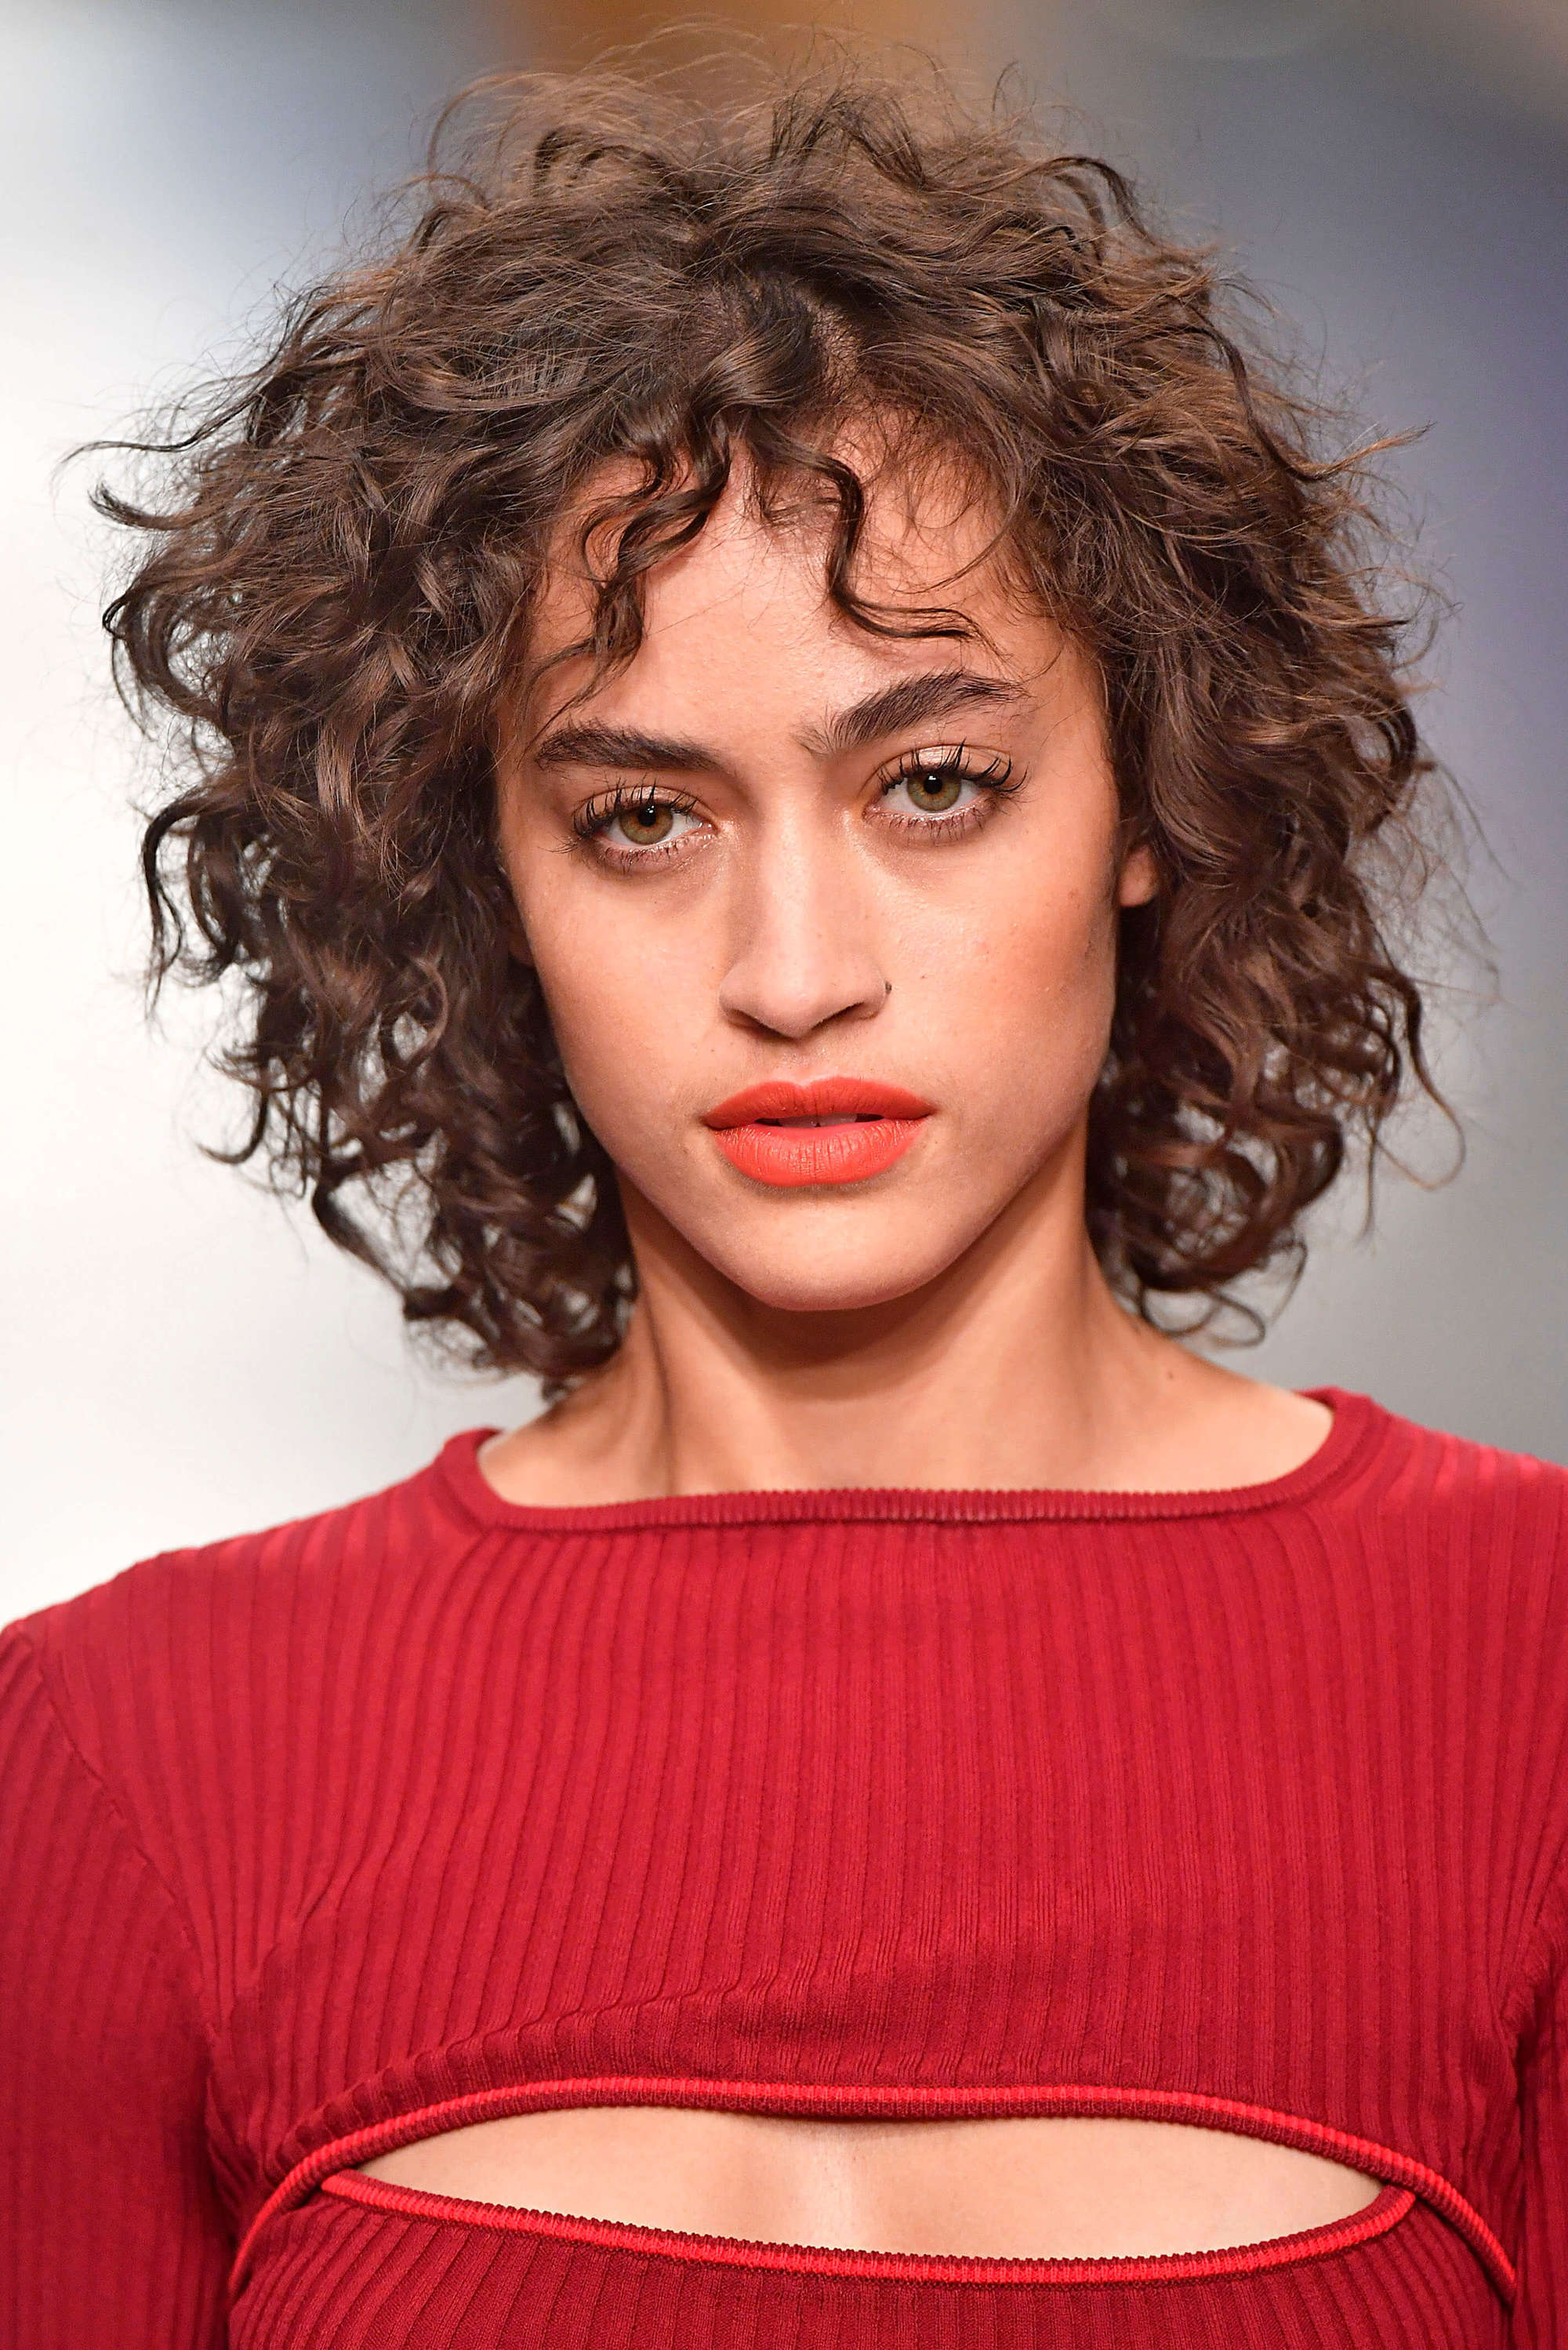 44 of the Best Haircuts for Curly Hair of Every Length